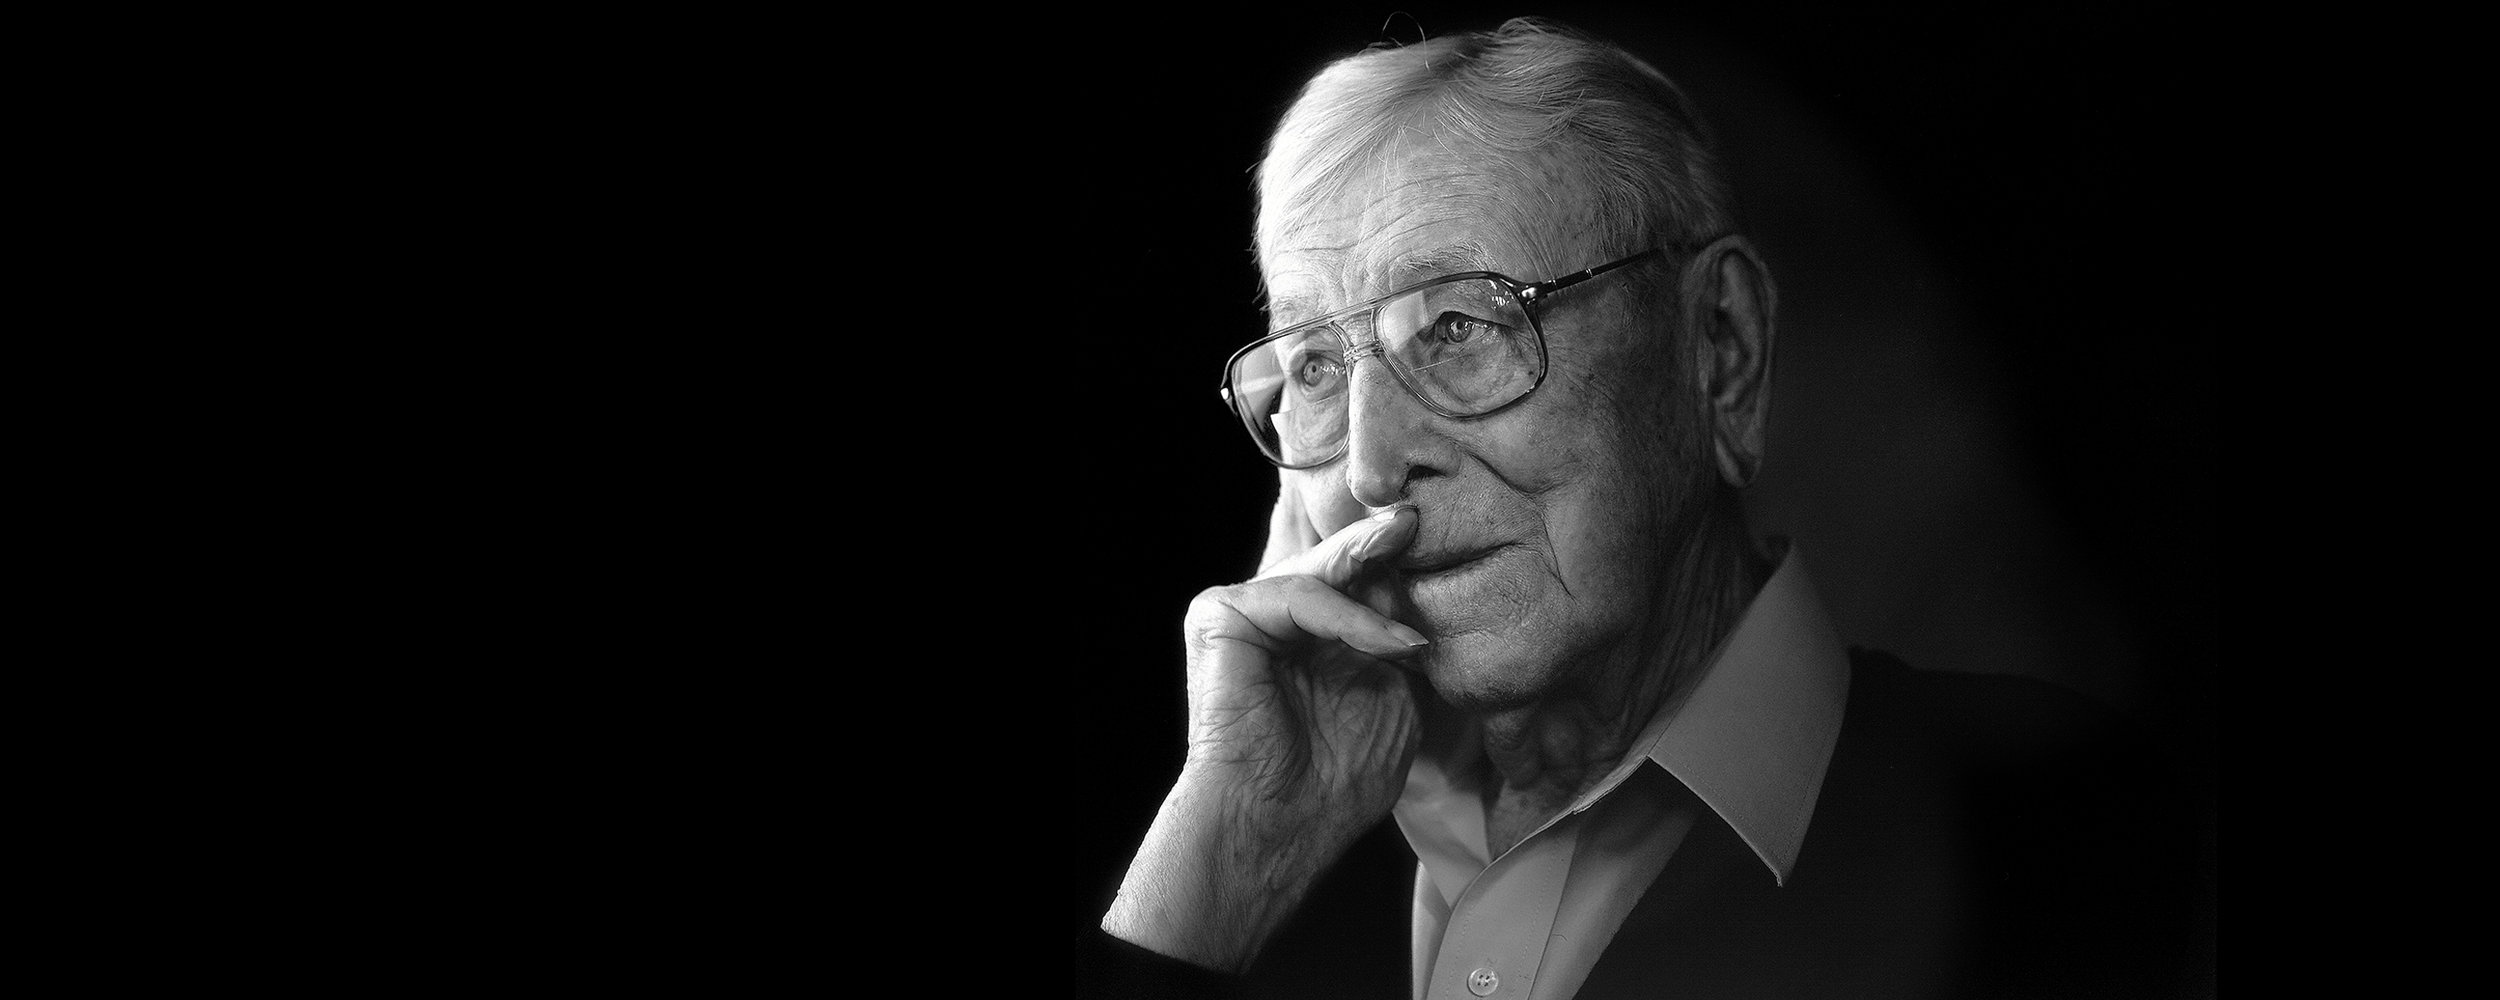 14 Life Lessons From Legendary Coach John Wooden Accountability